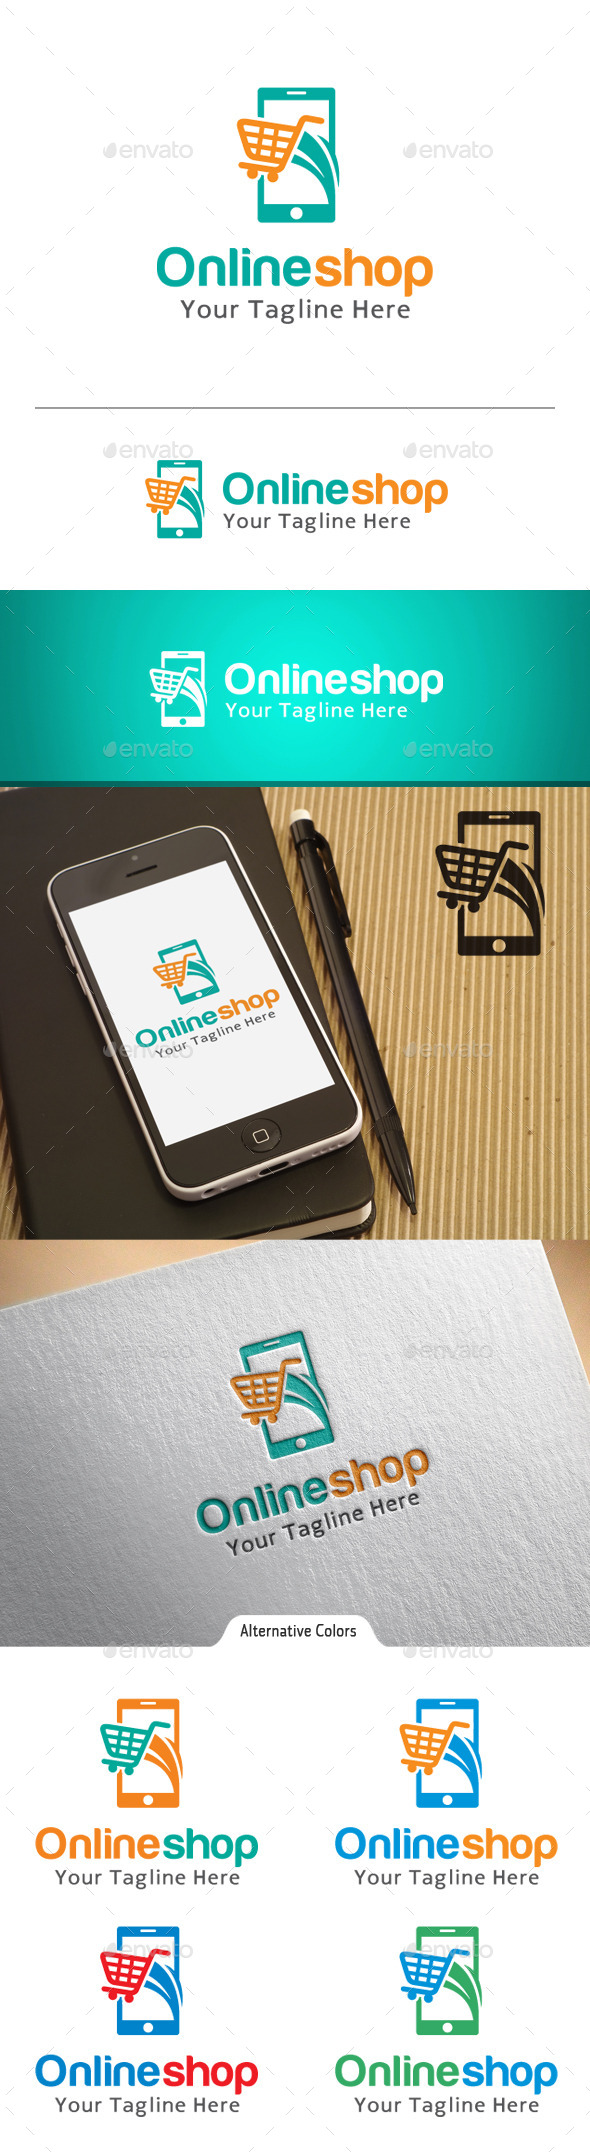 Online Shop Logo Graphics Designs Templates From Graphicriver